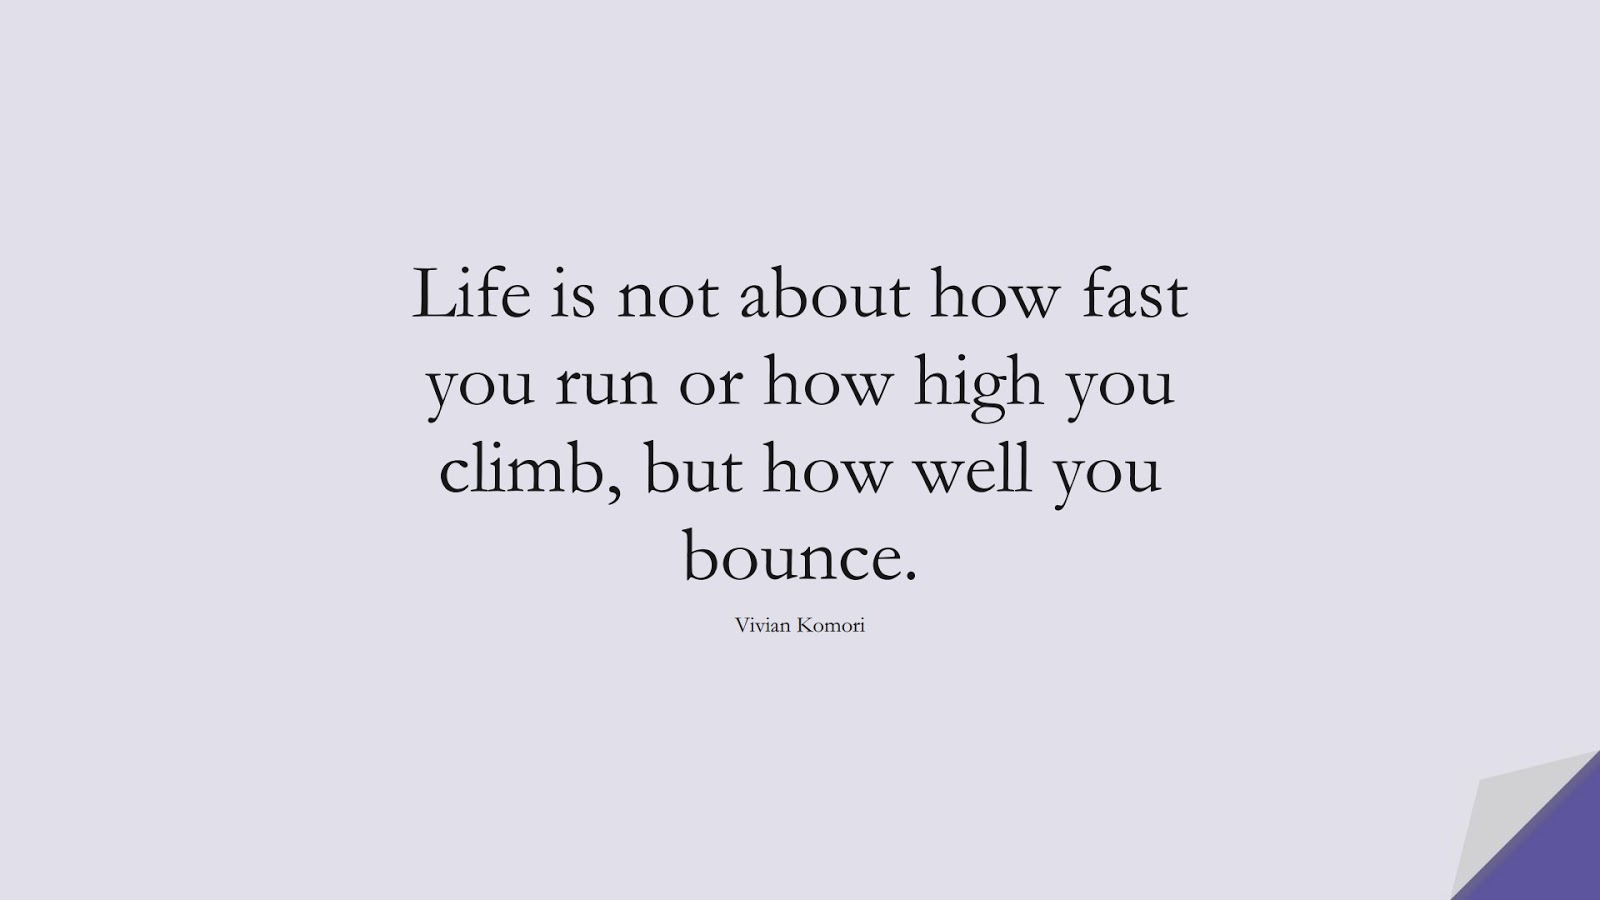 Life is not about how fast you run or how high you climb, but how well you bounce. (Vivian Komori);  #ShortQuotes